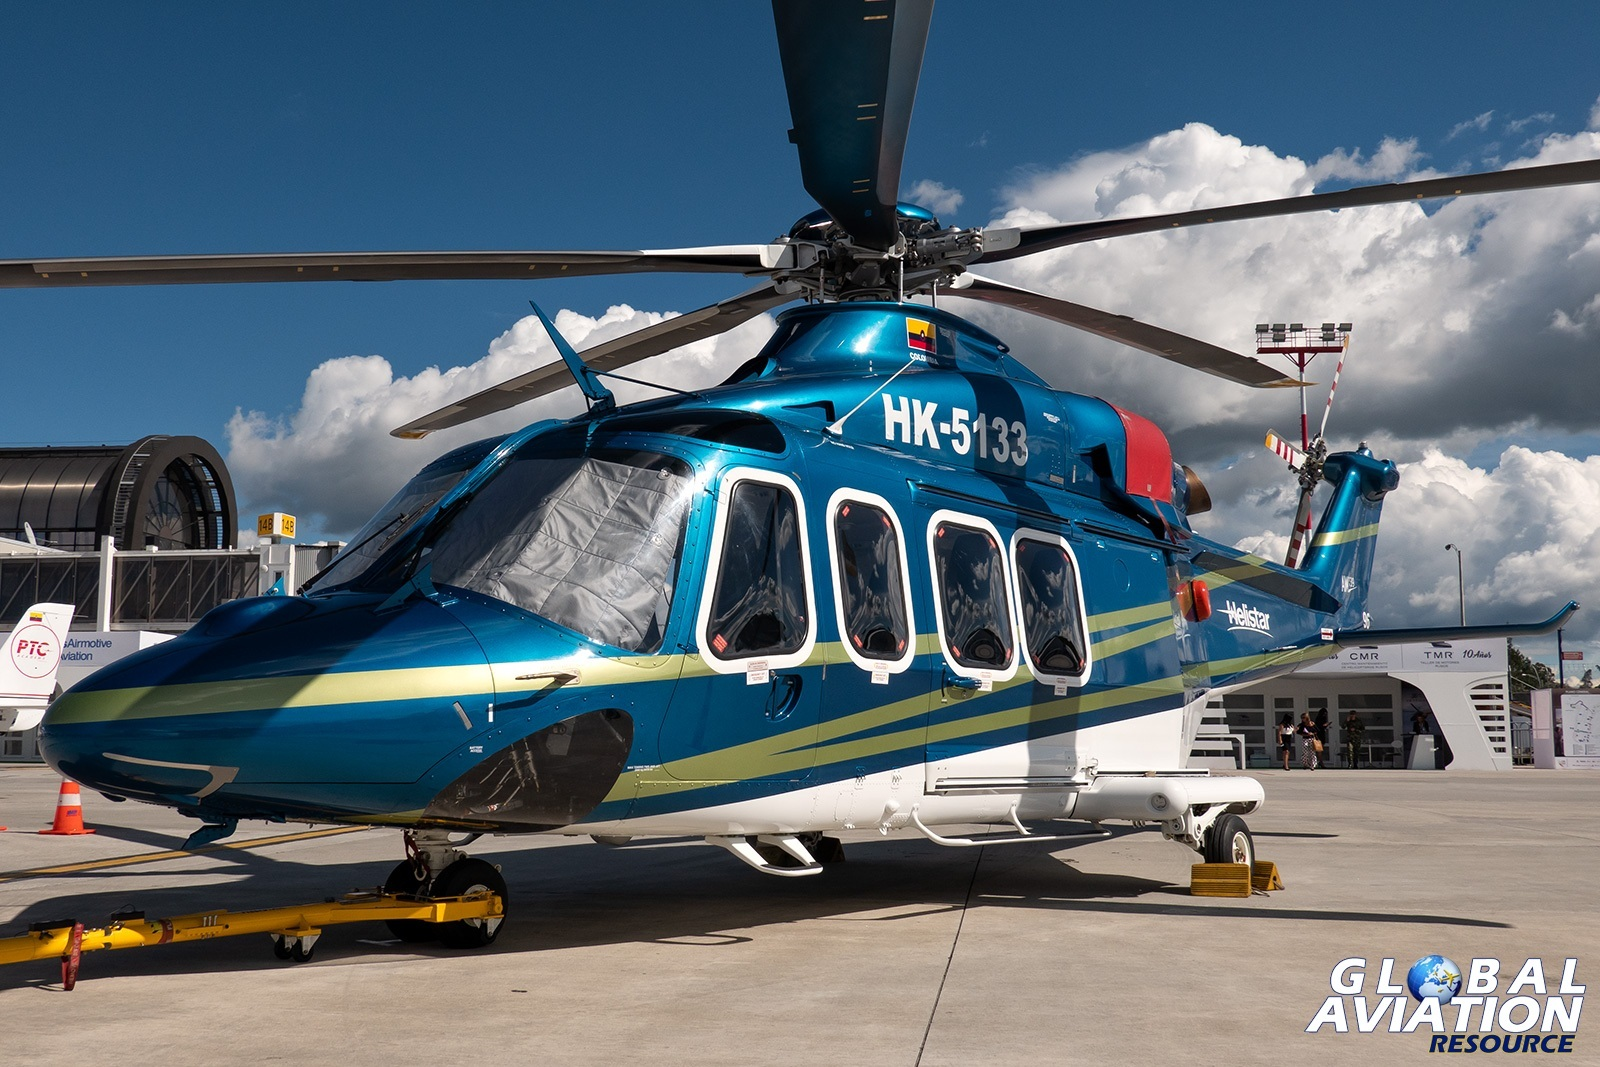 Helistar AW139 - © Paul Filmer, Global Aviation Resource